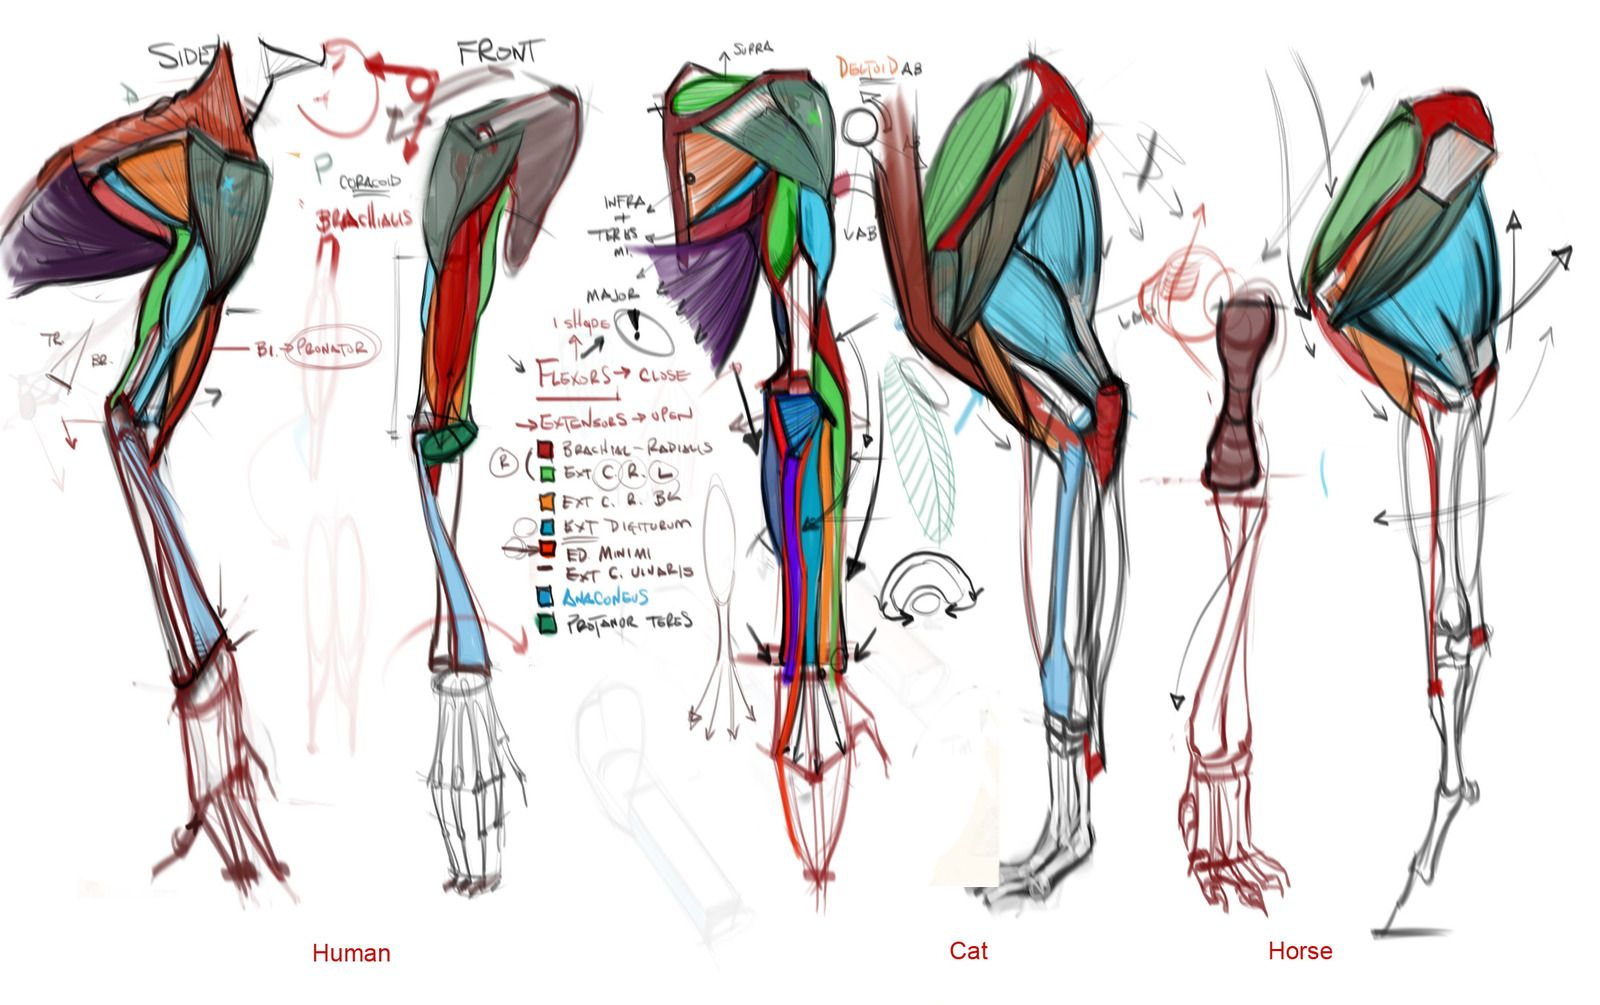 Worksheets Comparative Anatomy Worksheet comparative lecture arms by mhampton michael hampton cghub via anatomy upper torso arm and legs